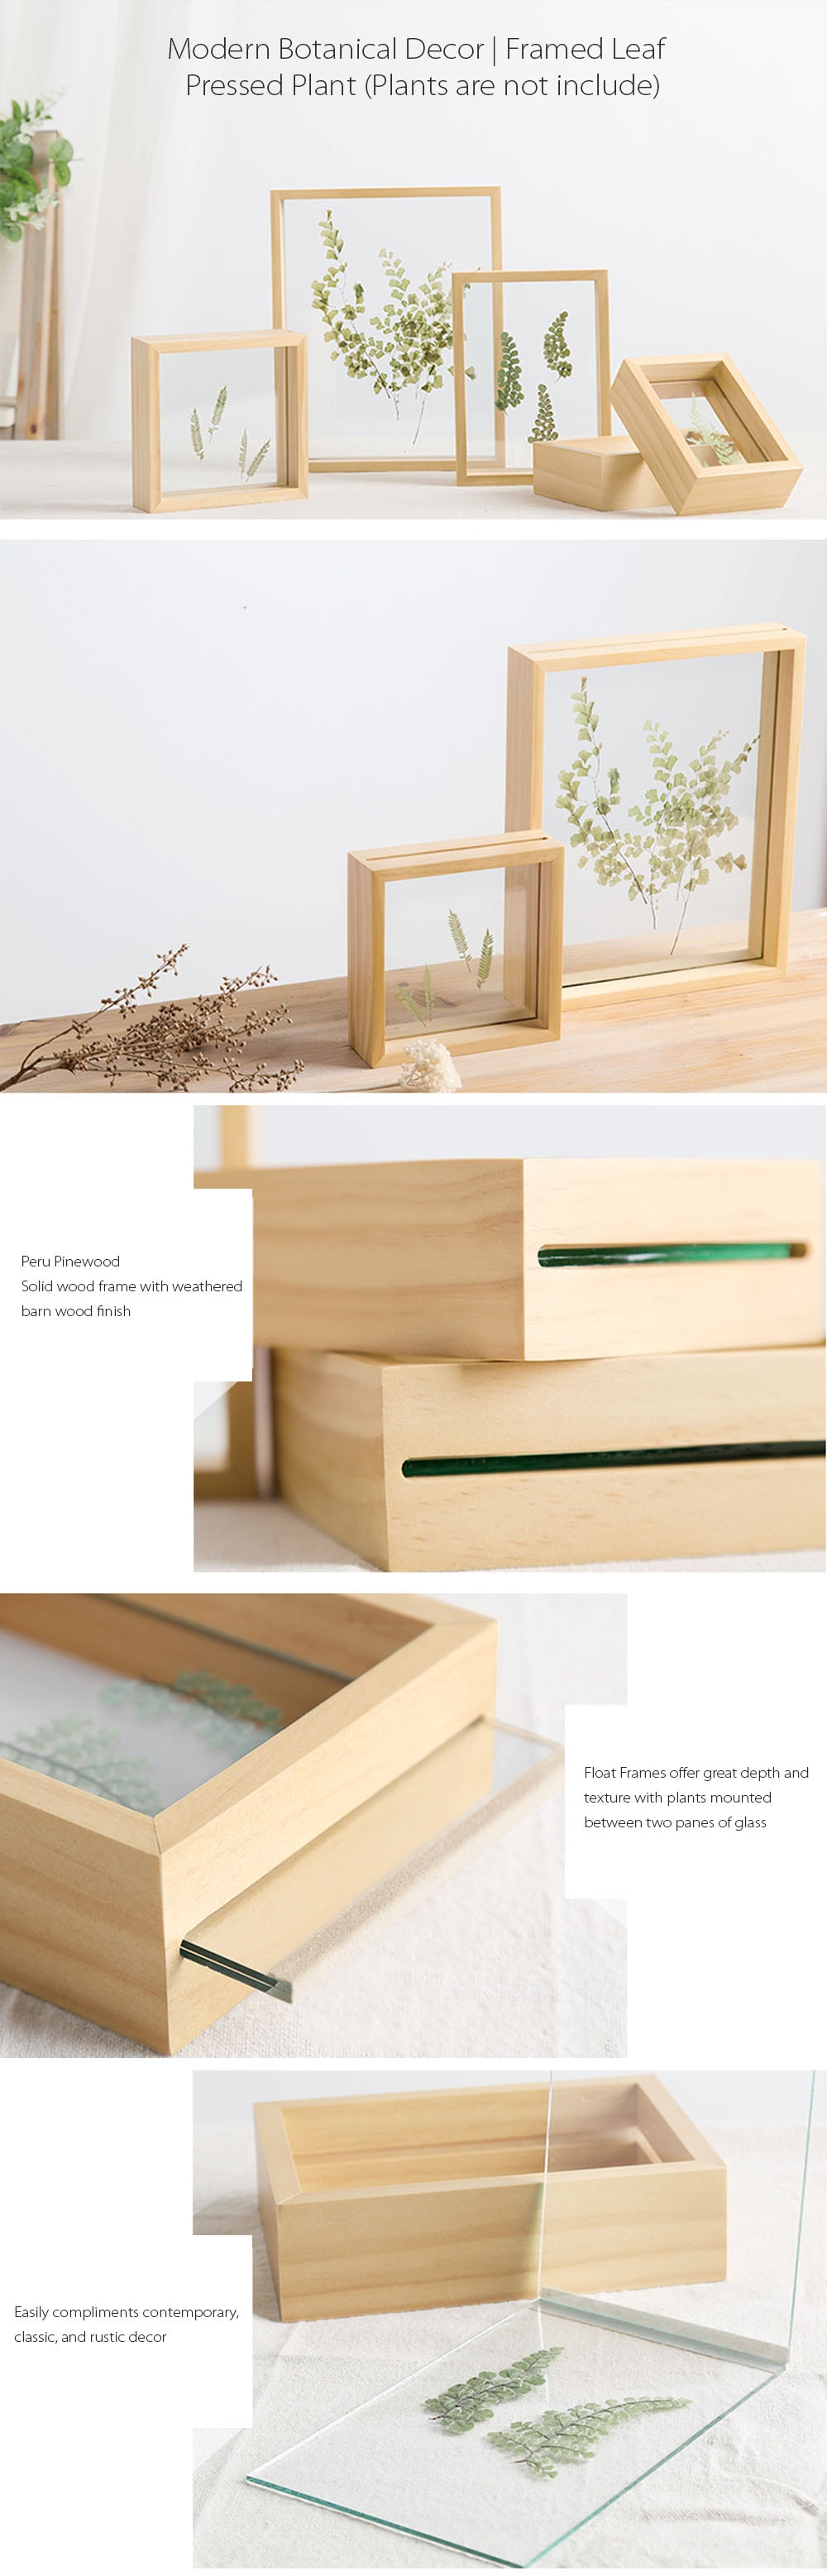 Wooden Frame Keep the Spring Inside